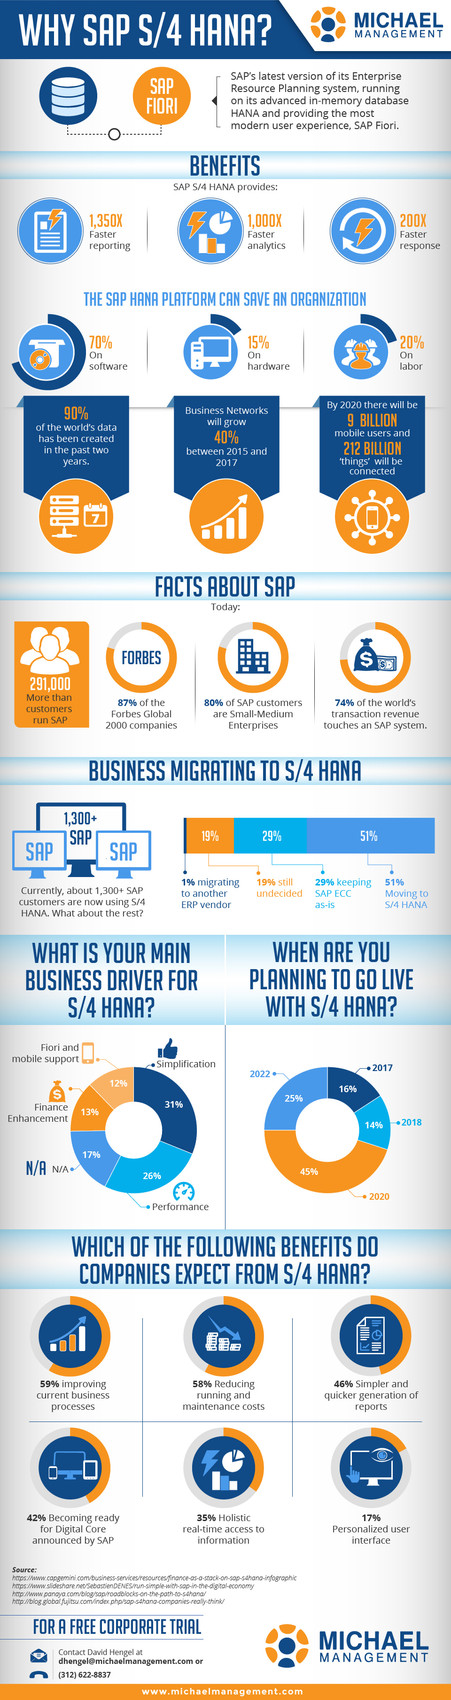 Why SAP A-4 HANA?